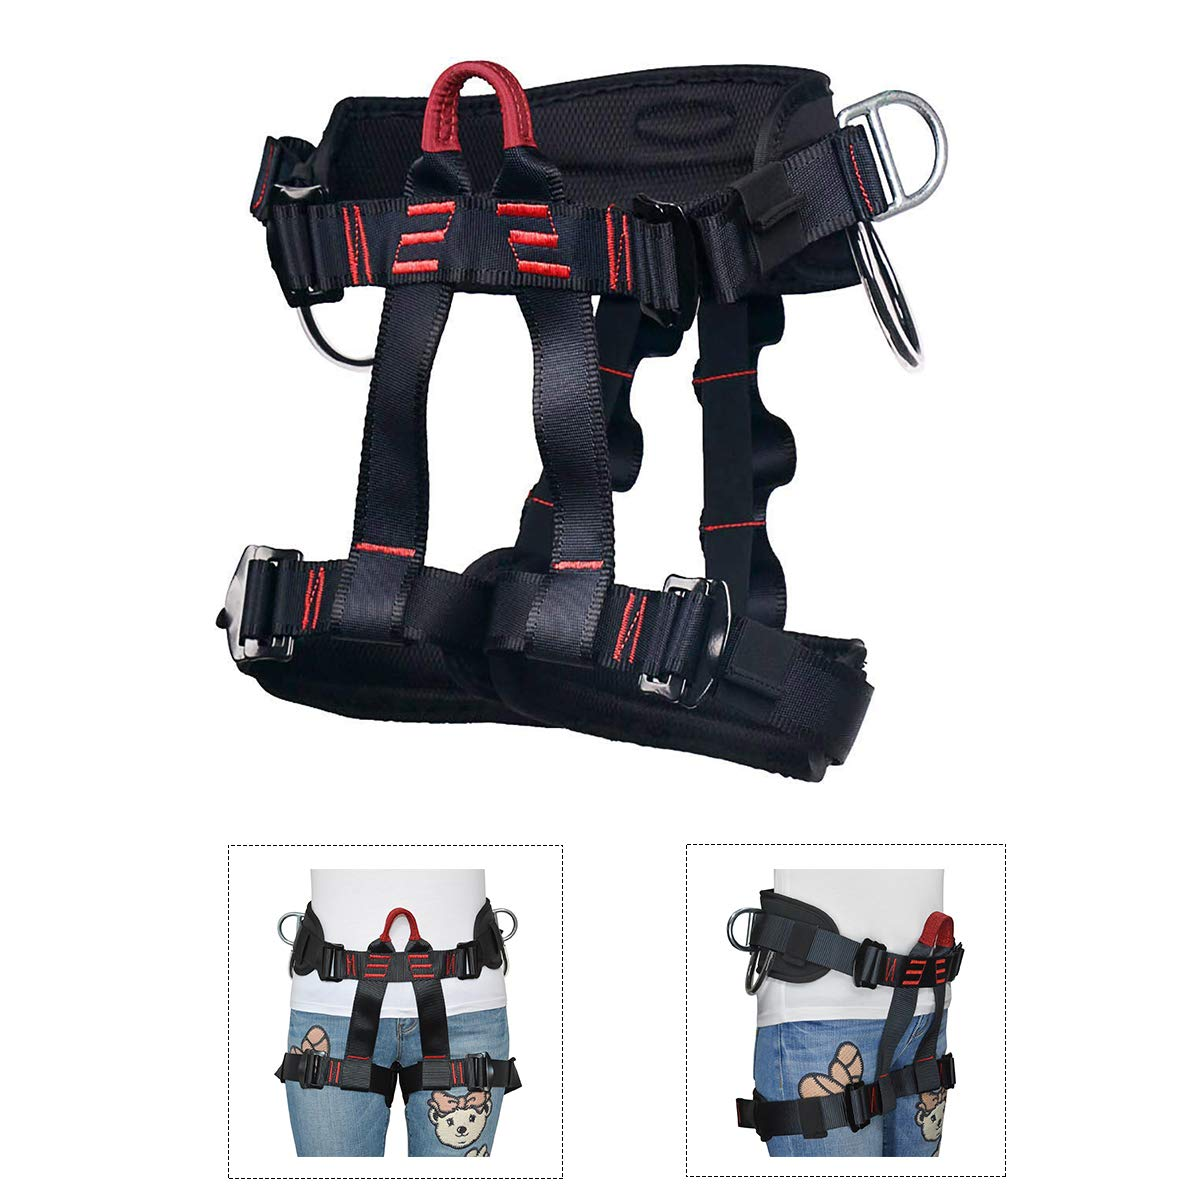 HeeJo Thicken Climbing Harness, Protect Waist Safety Harness, Wider Half Body Harness for Rock Climbing Tree Climbing Fire Rescue Expanding Training Rappelling Mountaineering by HeeJo